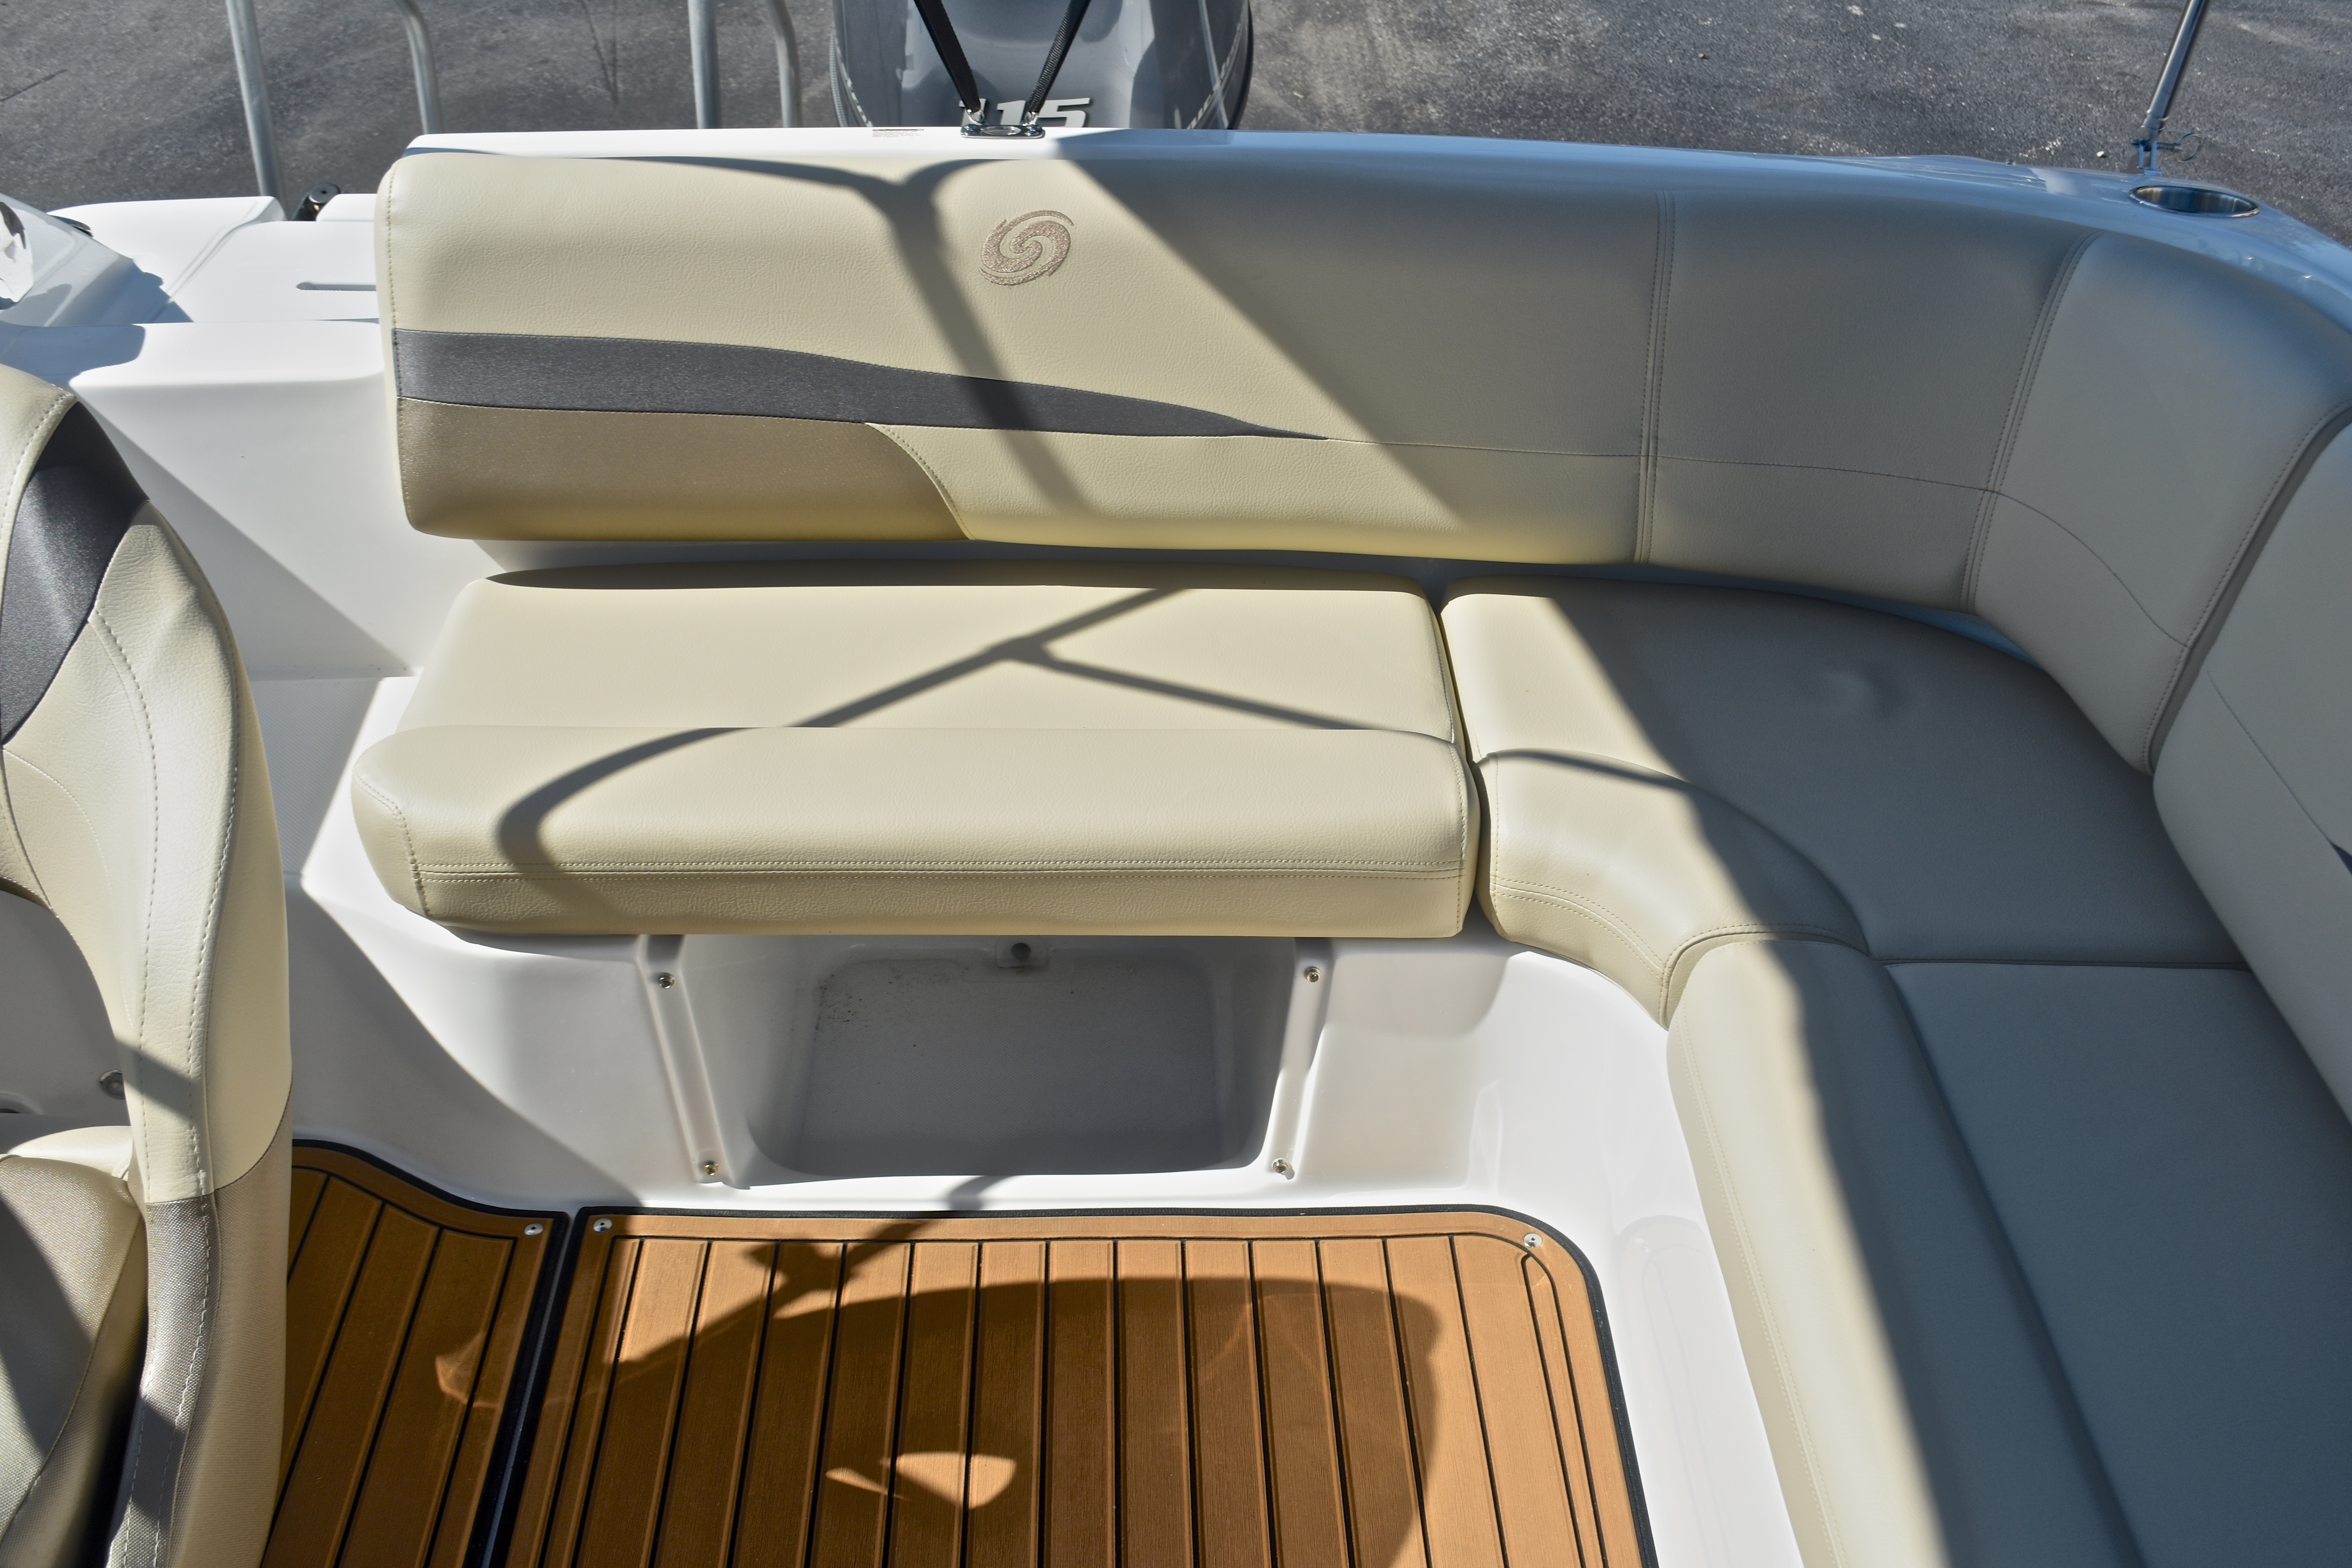 Thumbnail 19 for New 2017 Hurricane SunDeck SD 187 OB boat for sale in West Palm Beach, FL